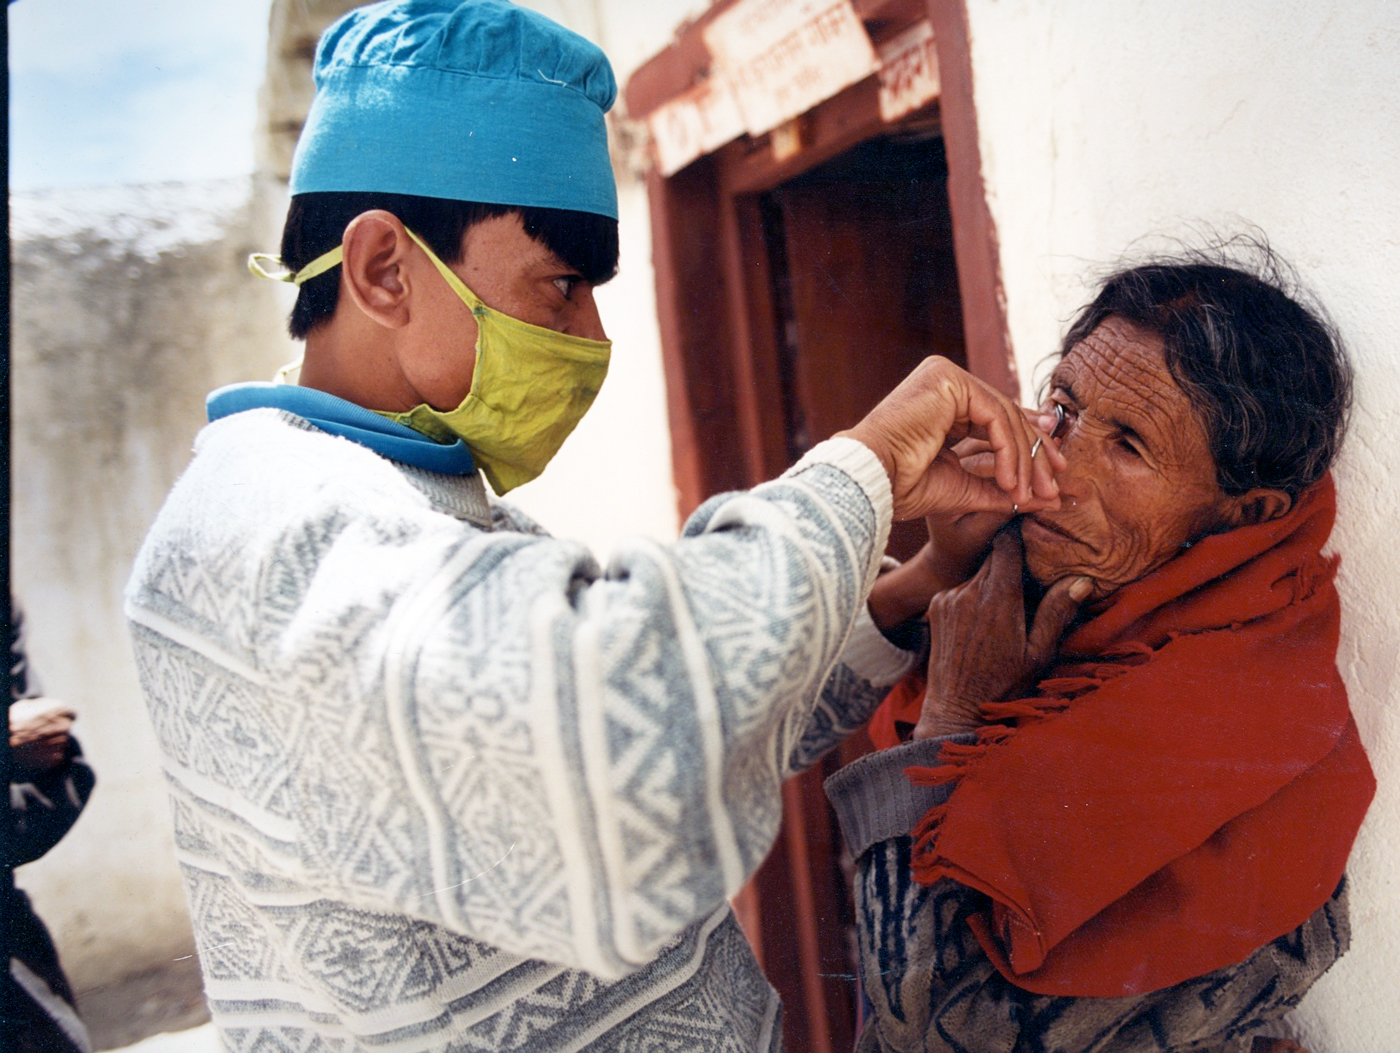 eye exam in remote village